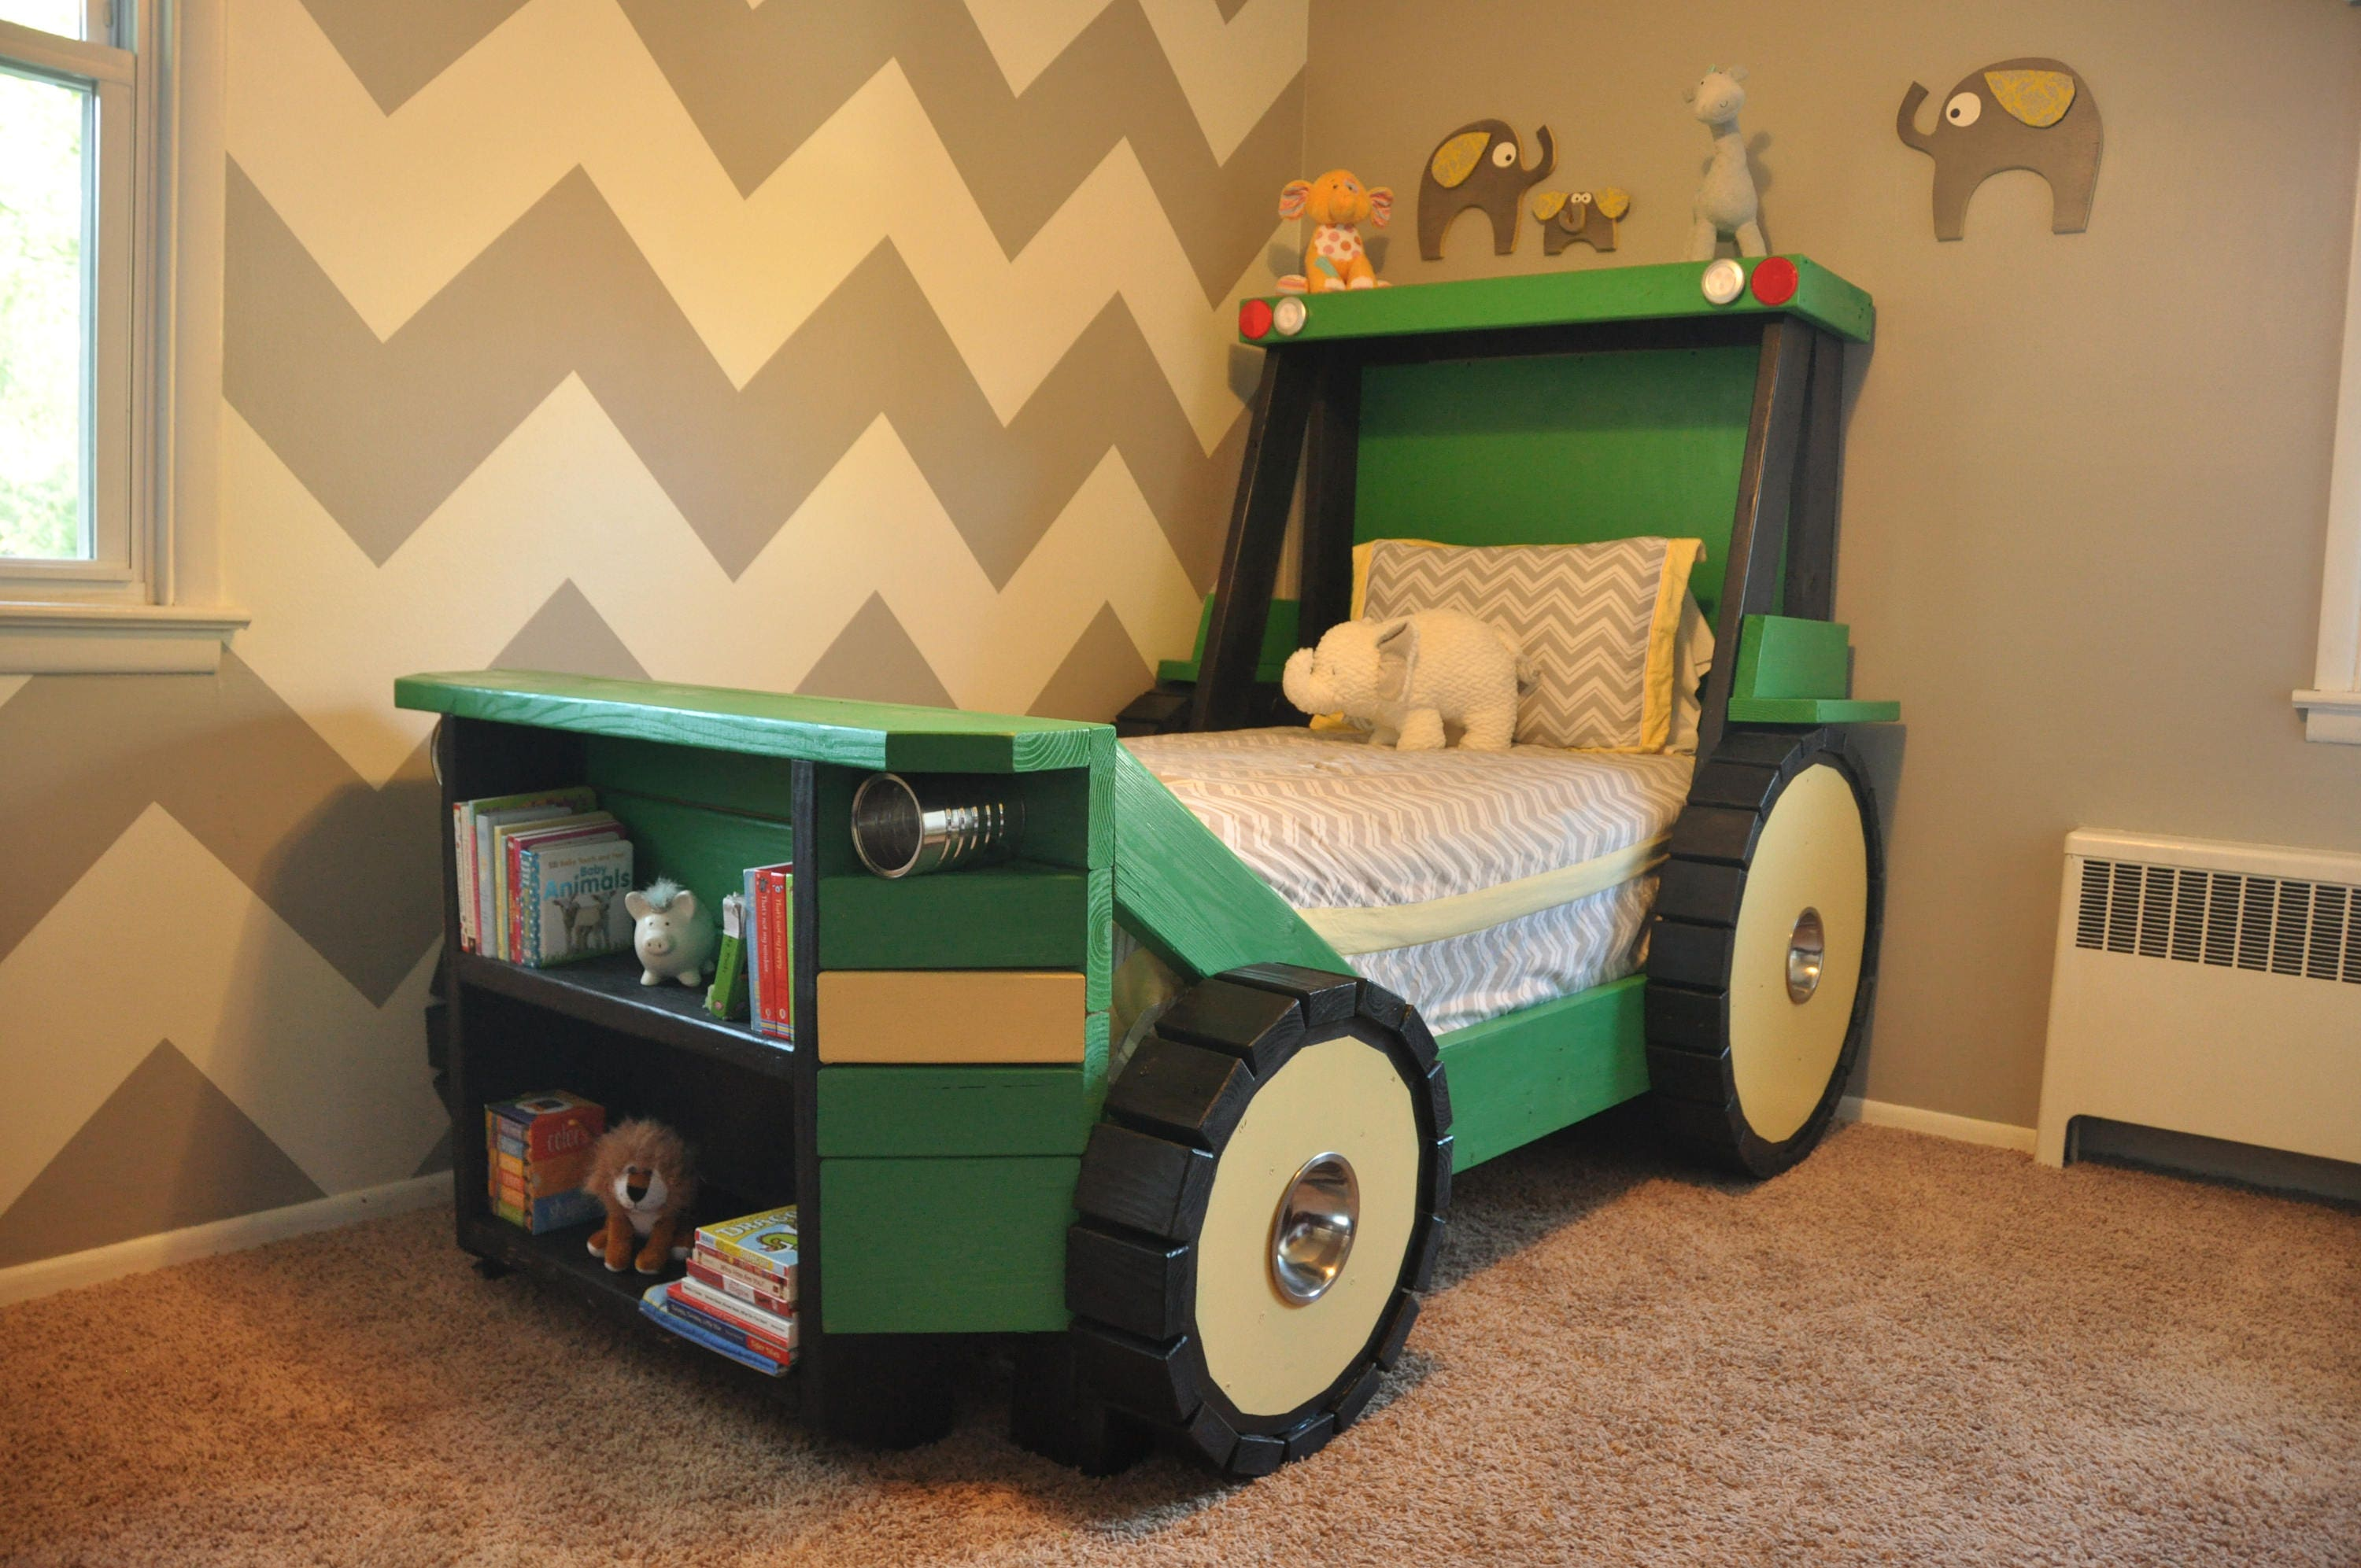 Tractor Bed Plans In Digital Format For A Diy Farm Themed